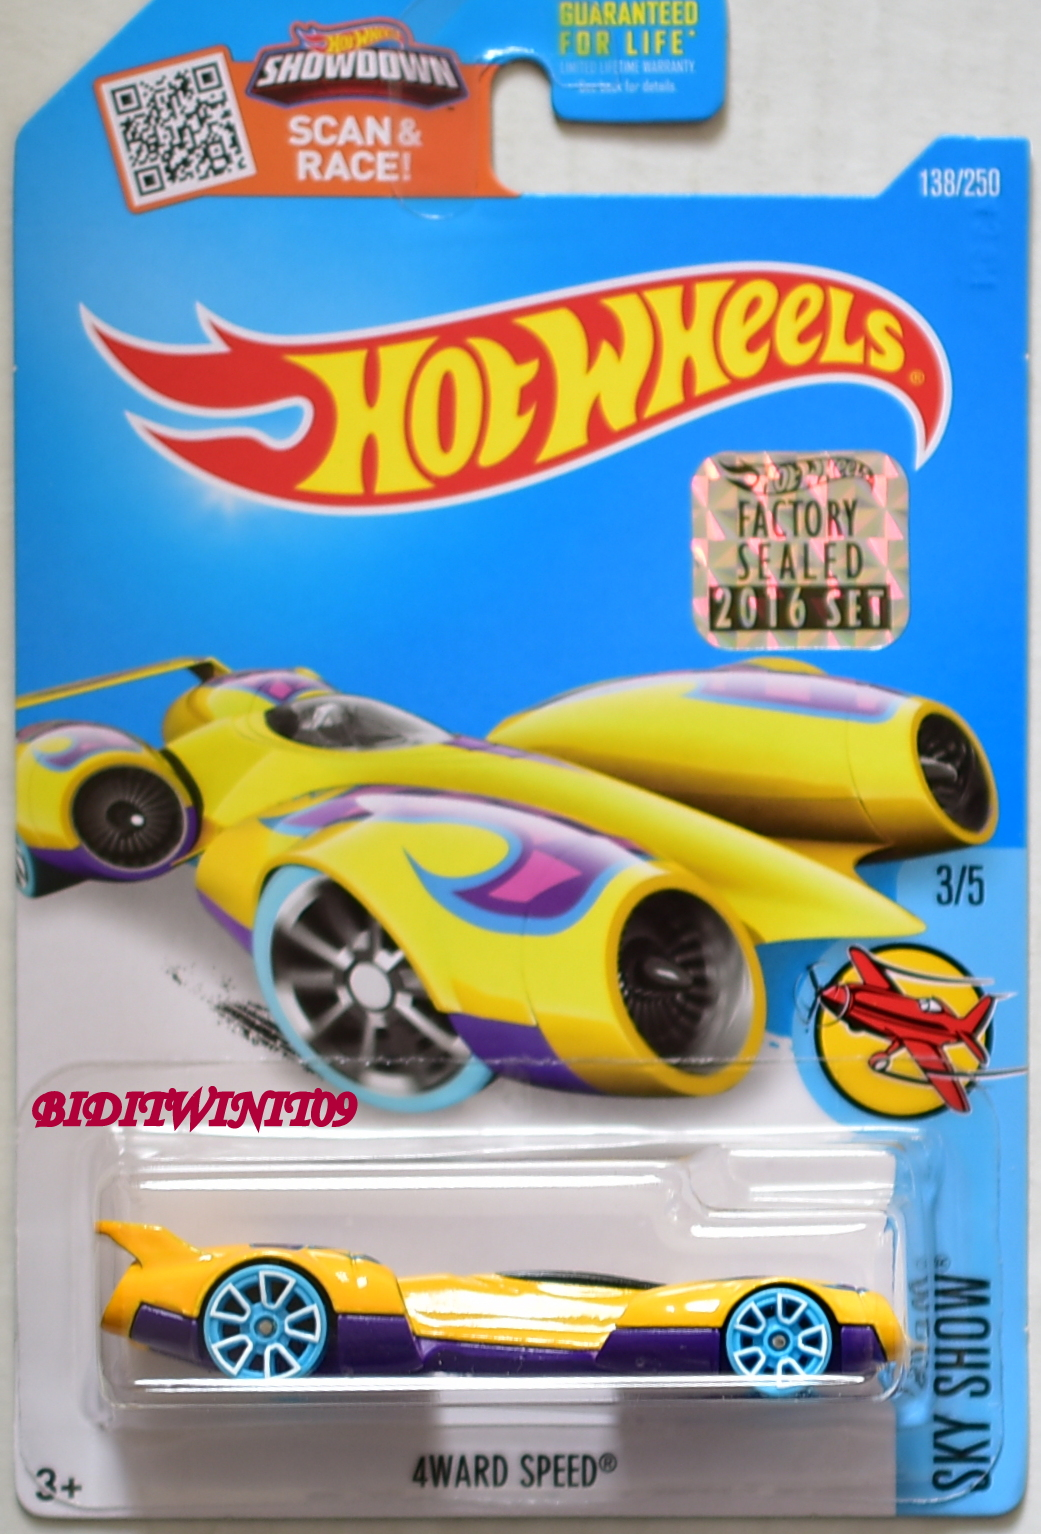 HOT WHEELS 2016 SKY SHOW 4WARD SPEED #3/5 FACTORY SEALED